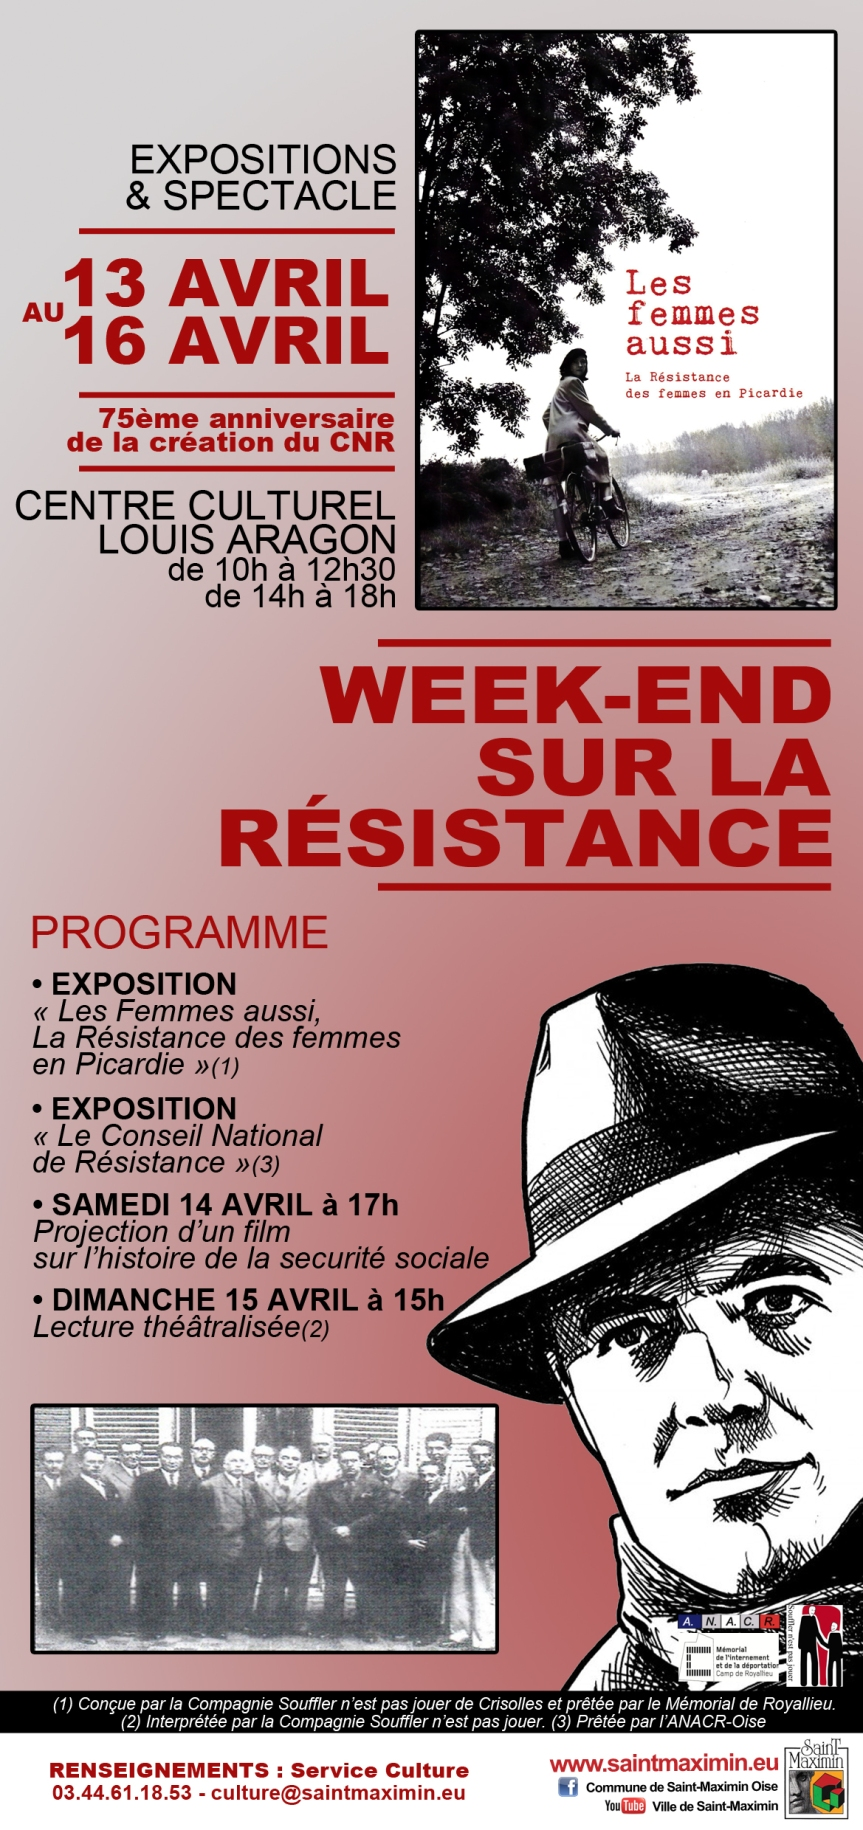 SAINT MAXIMIN Flyer programme WEEK-END Résistance last version